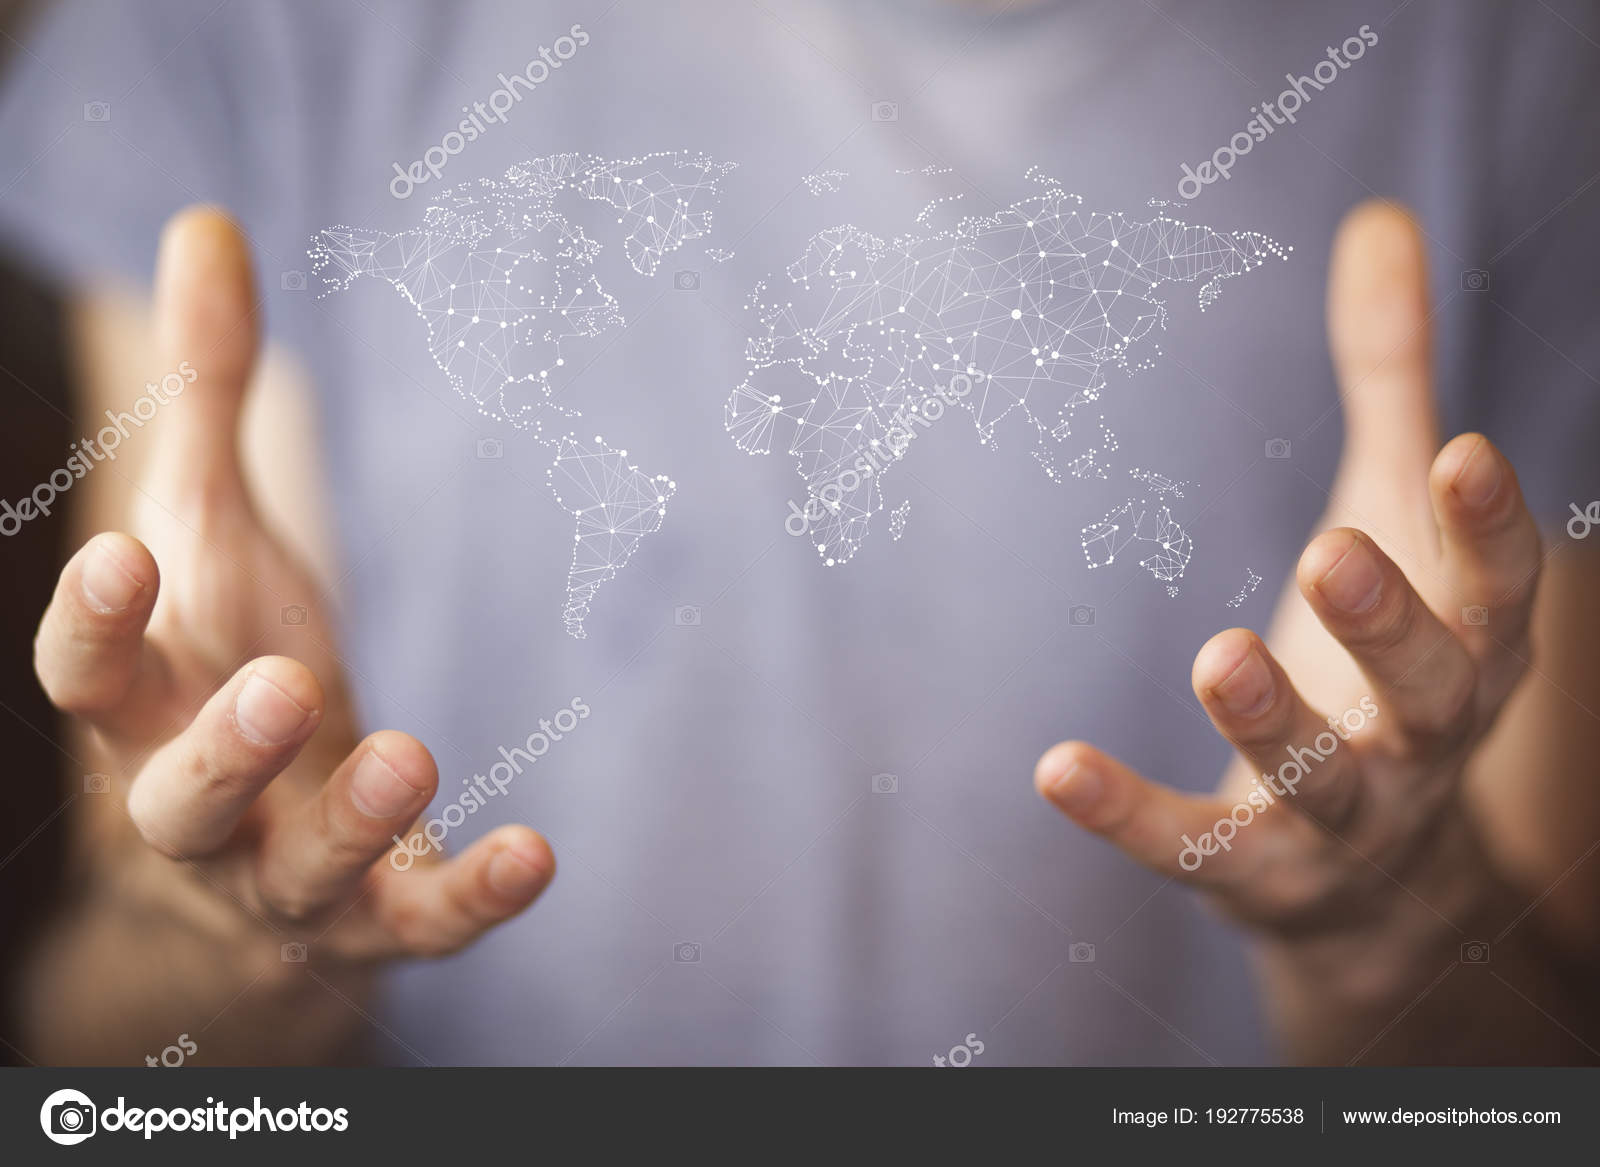 World Map On Hands.Businessman Holding World Map Hands Stock Photo C Tiko0305 192775538